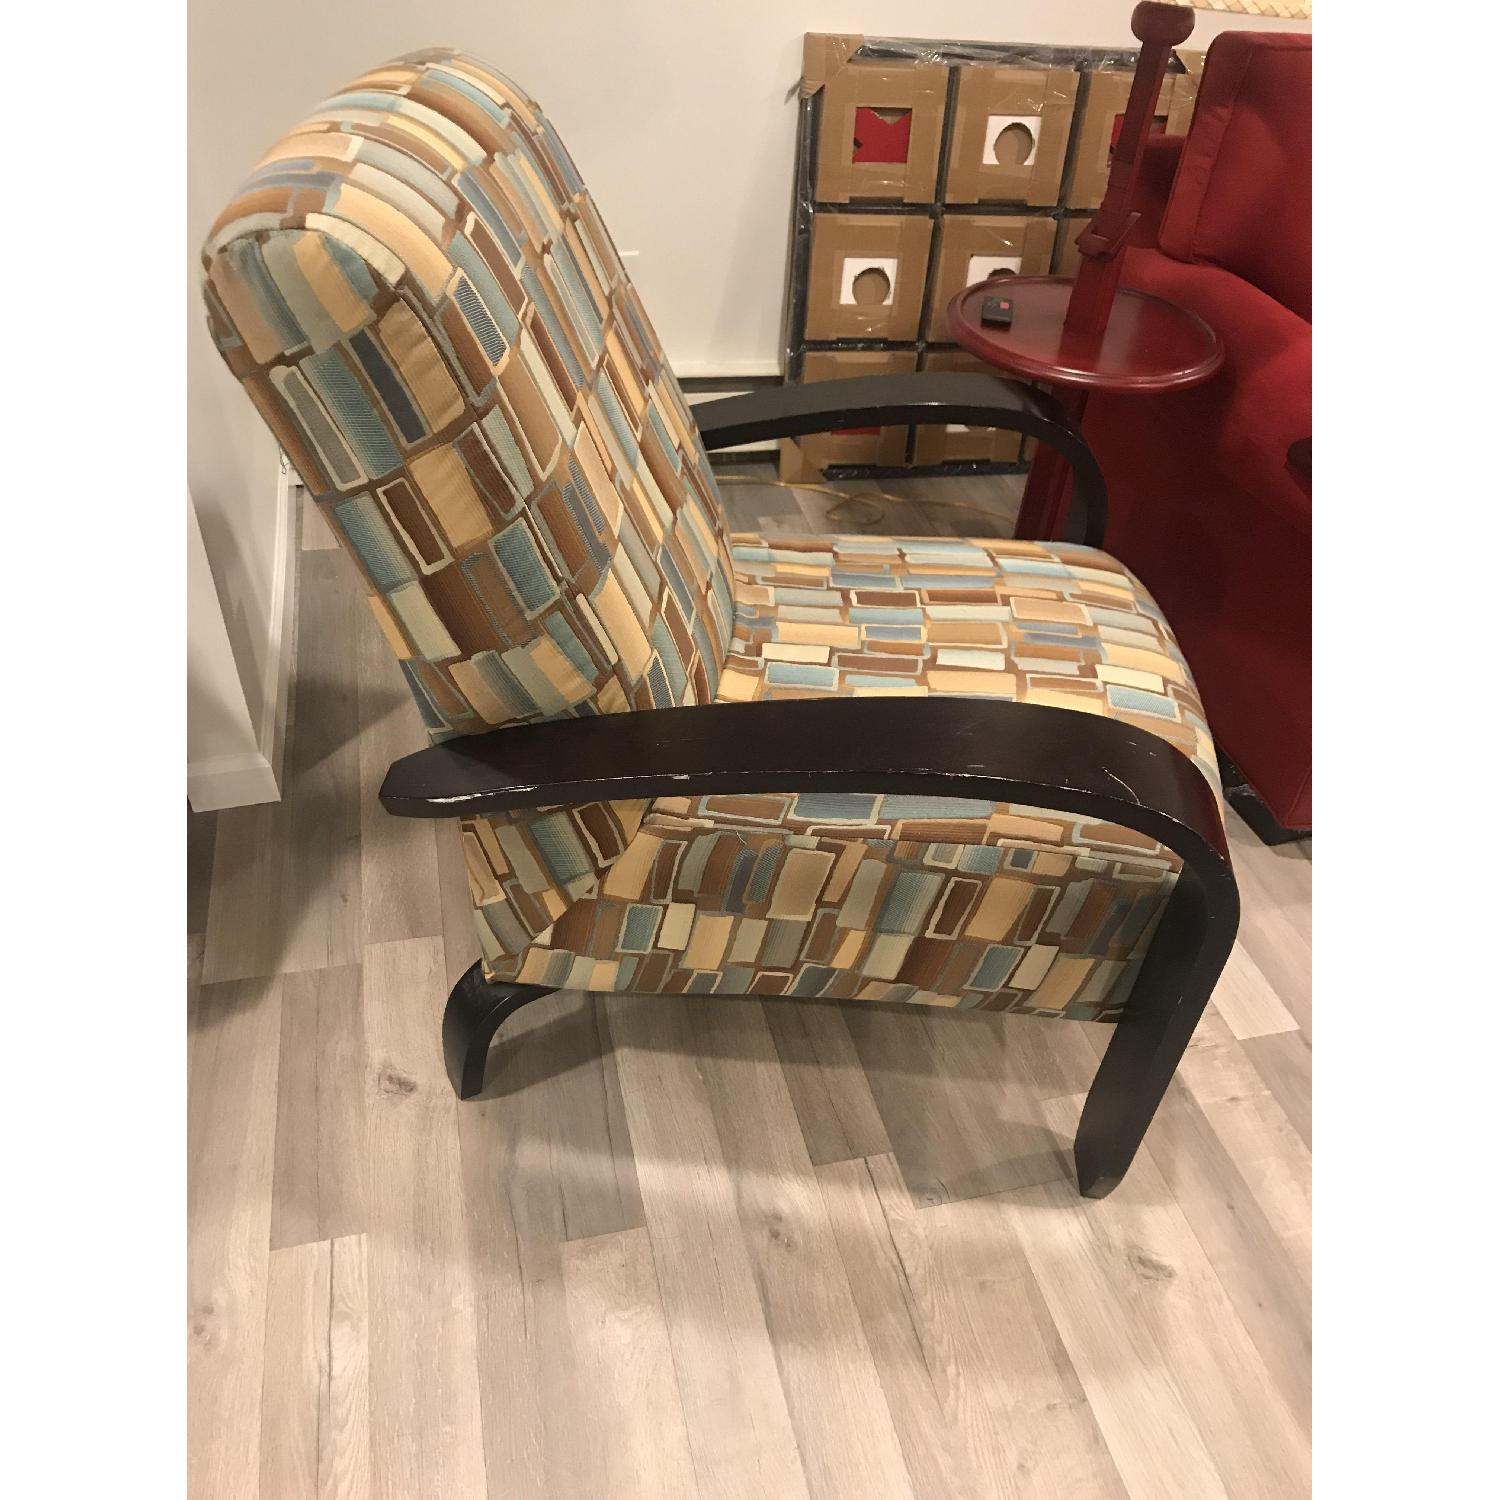 Wood & Fabric Upholstered Chairs - image-6